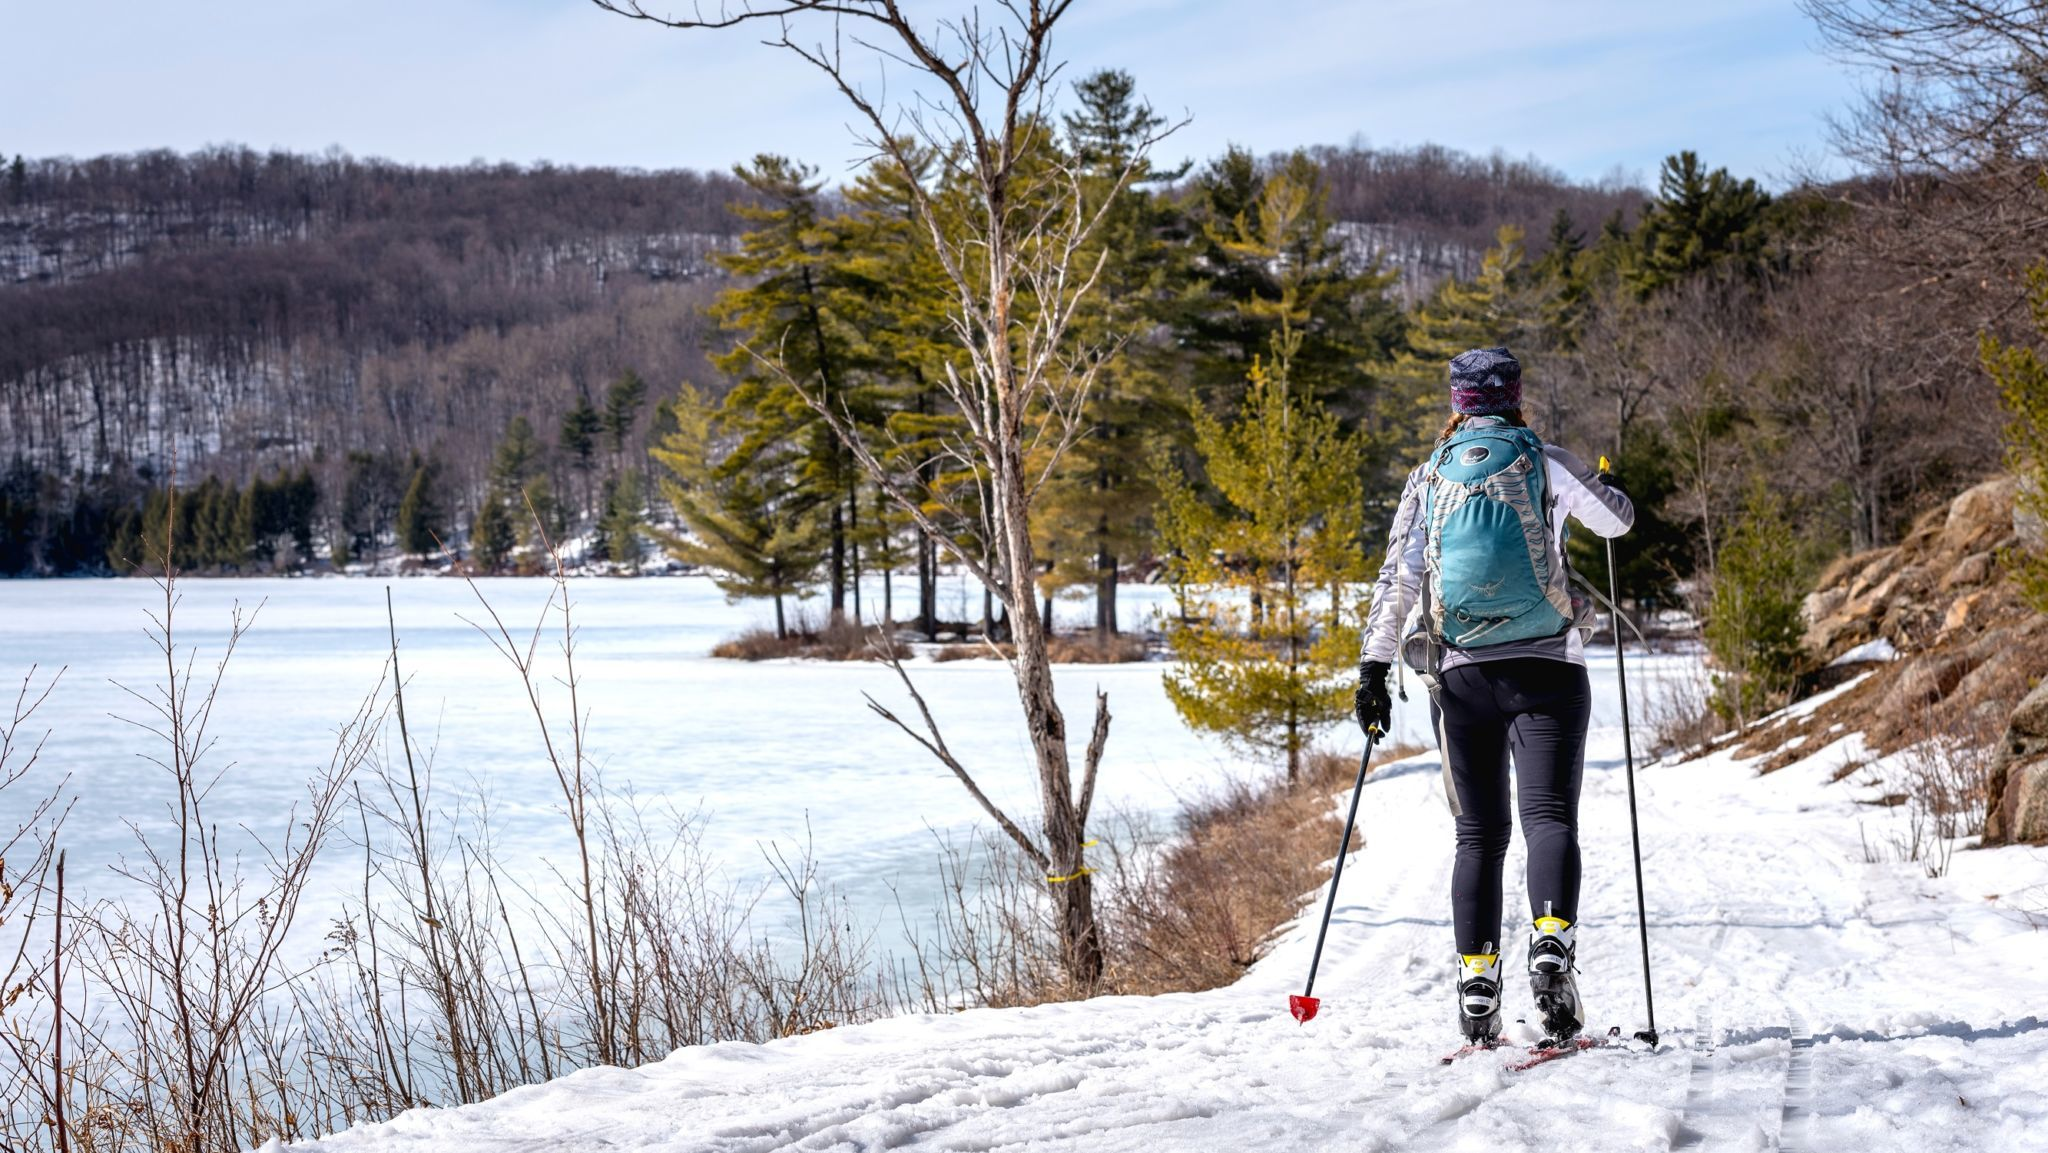 Cross-country skiing in the Philippe Lake area.